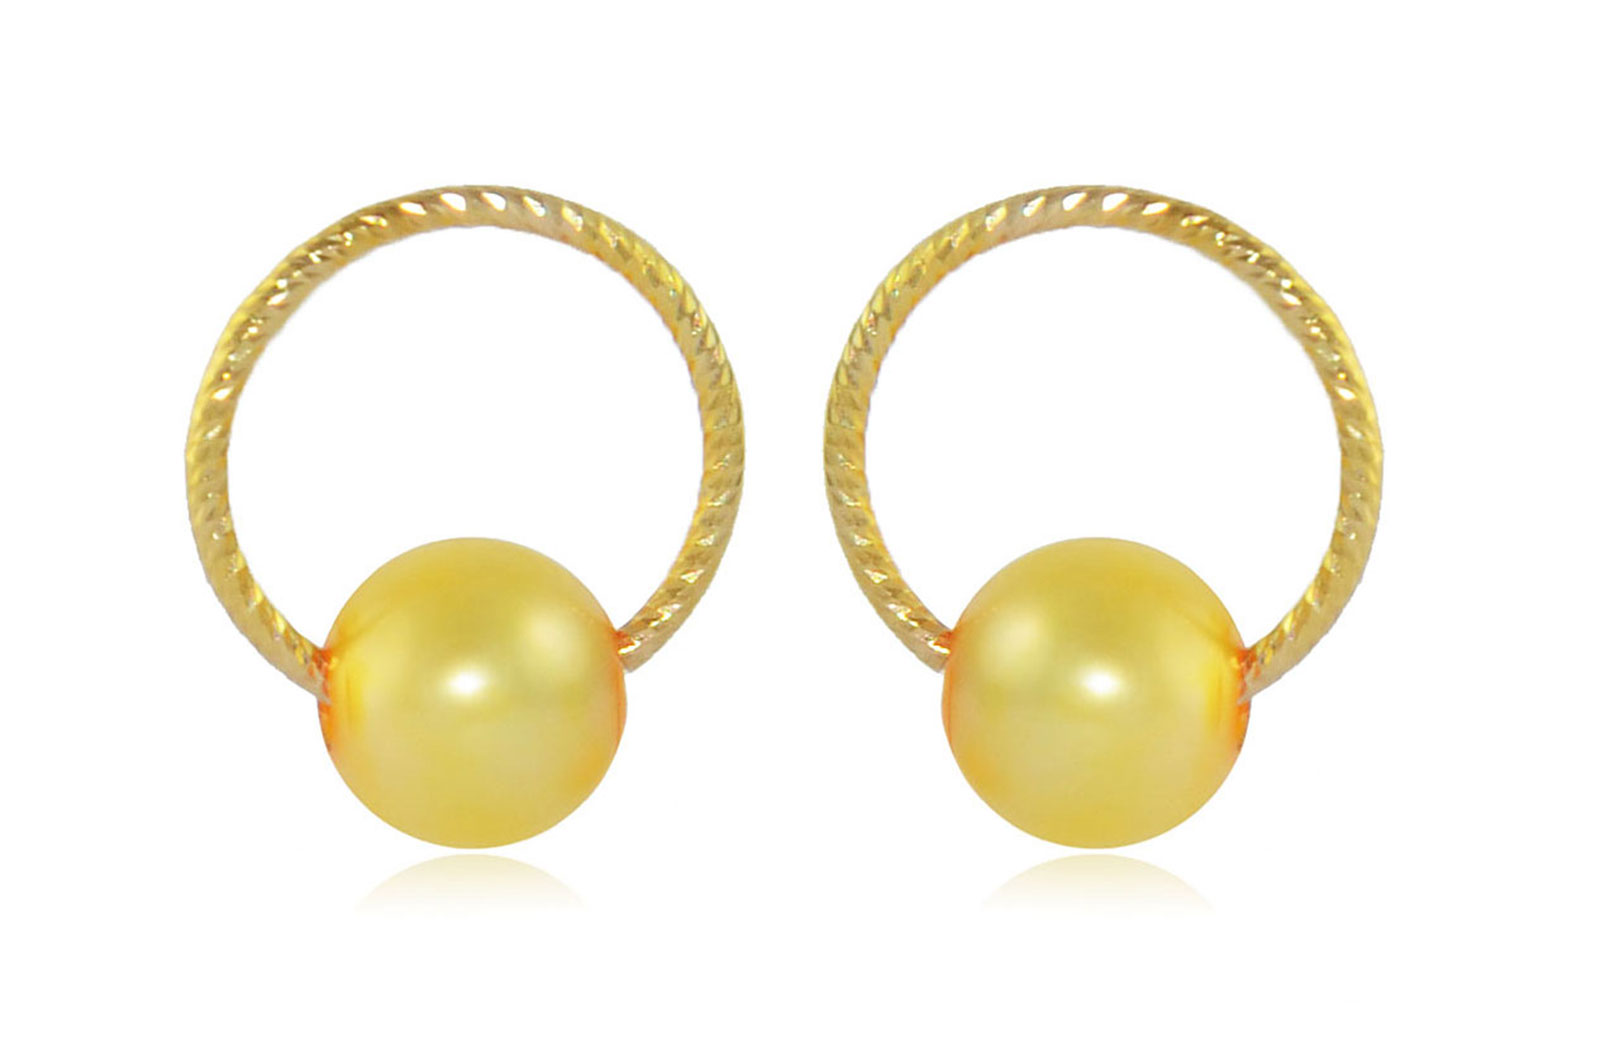 Vera Perla 10k Gold, Delicate 7mm Golden Round Pearl Hoop Earrings